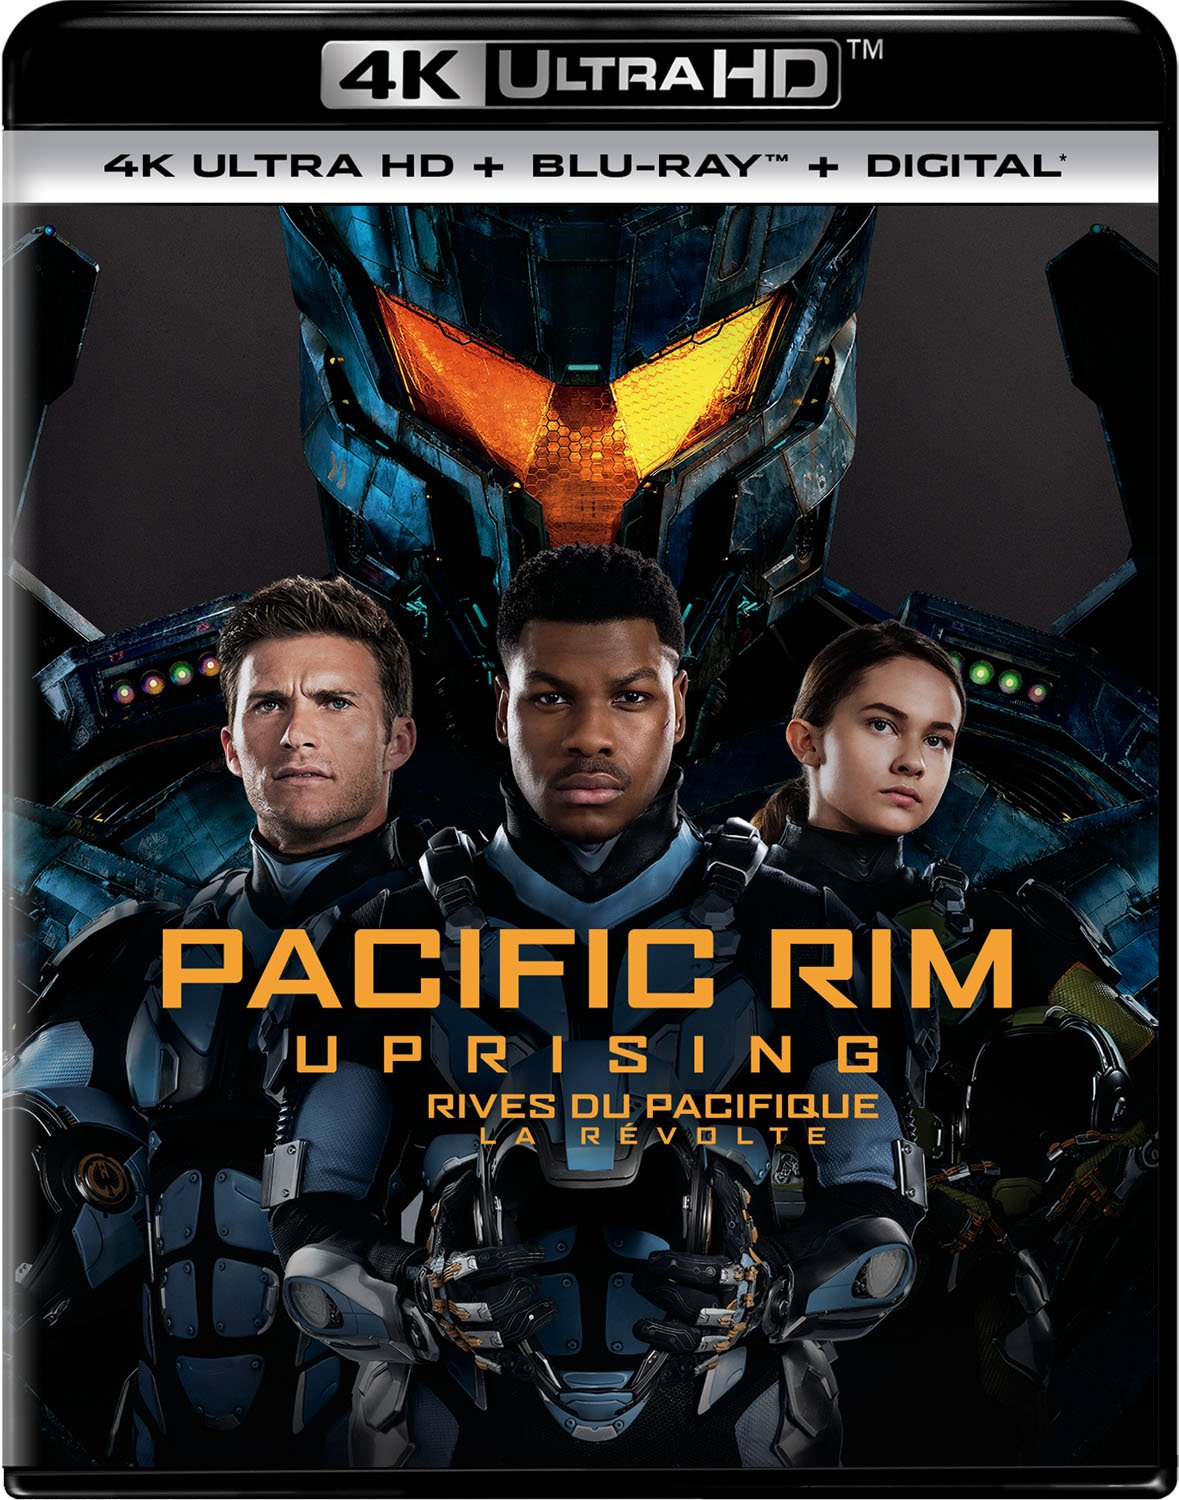 Pacific Rim Uprising [4K Ultra HD + Blu-ray + Digital] (Bilingual) John Boyega Scott Eastwood Charlie Day